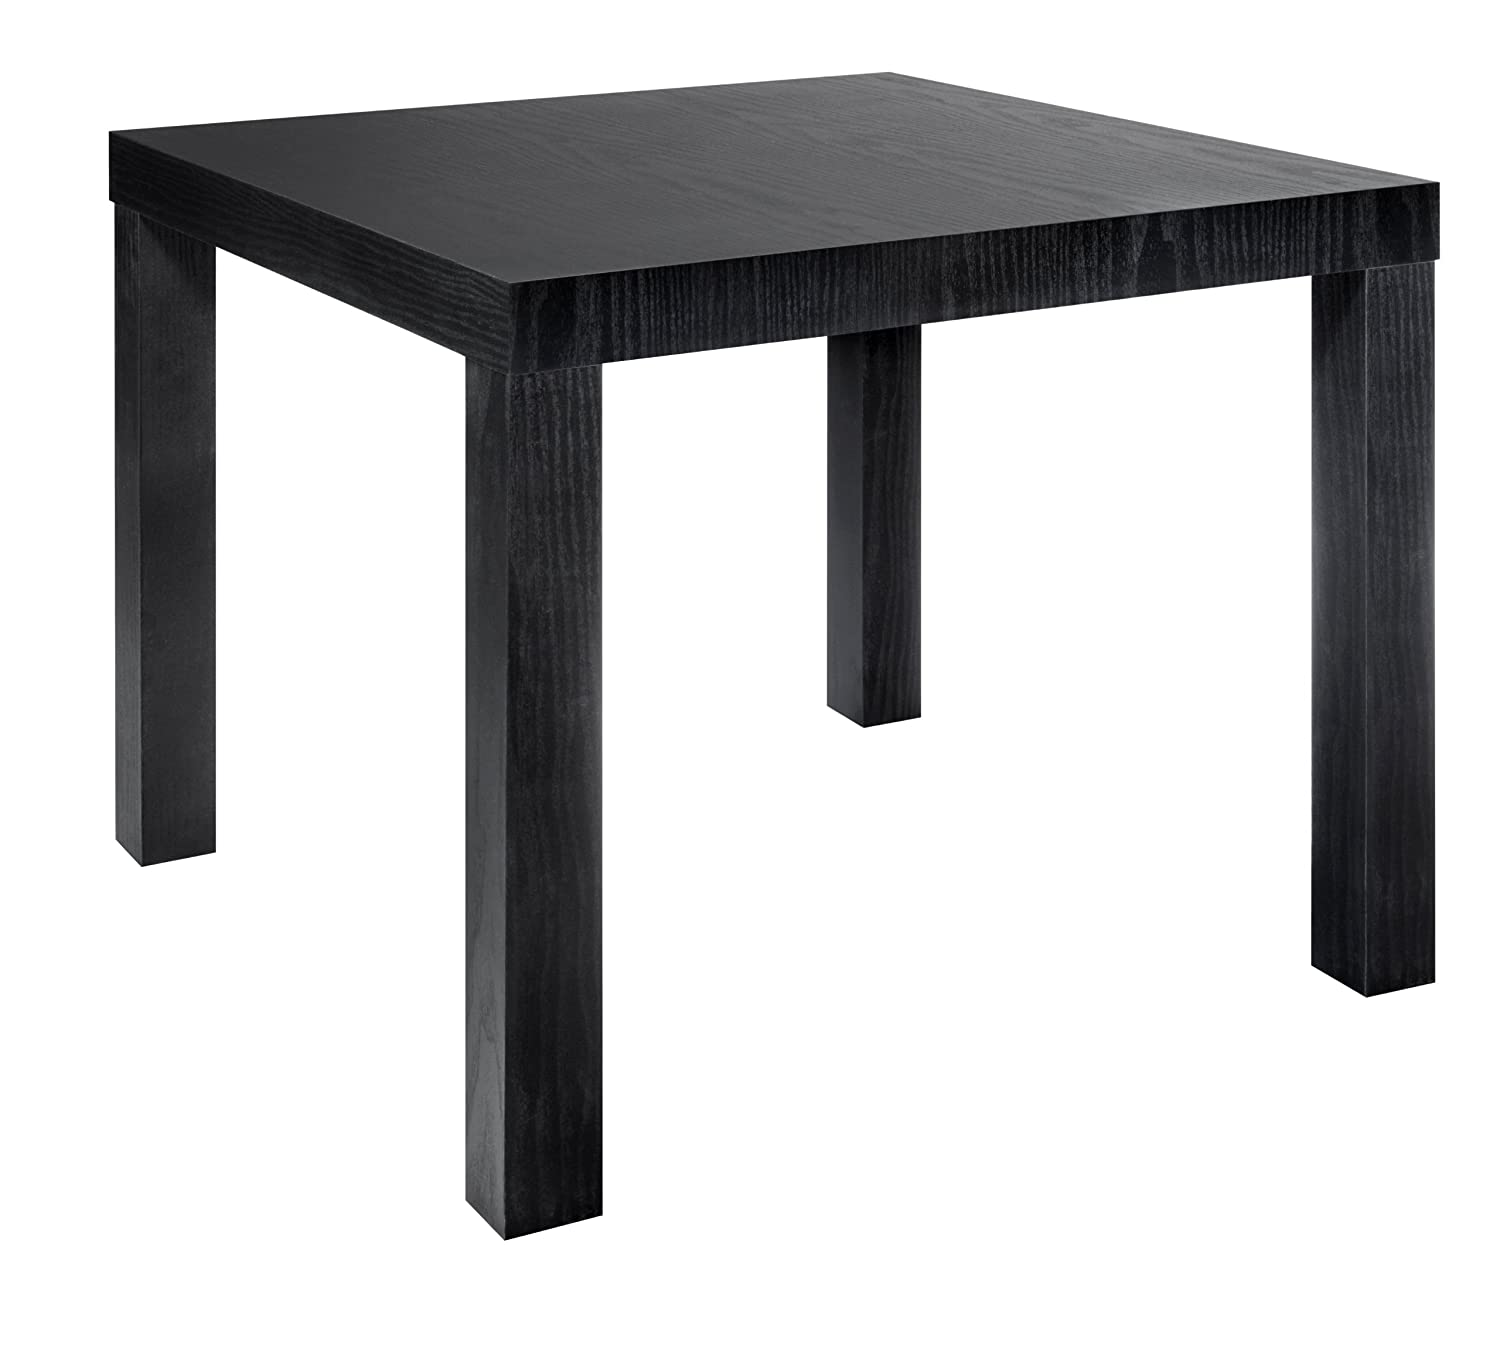 Black Wood End Tables Of Modern Style Black Wood Grain End Table Living Room